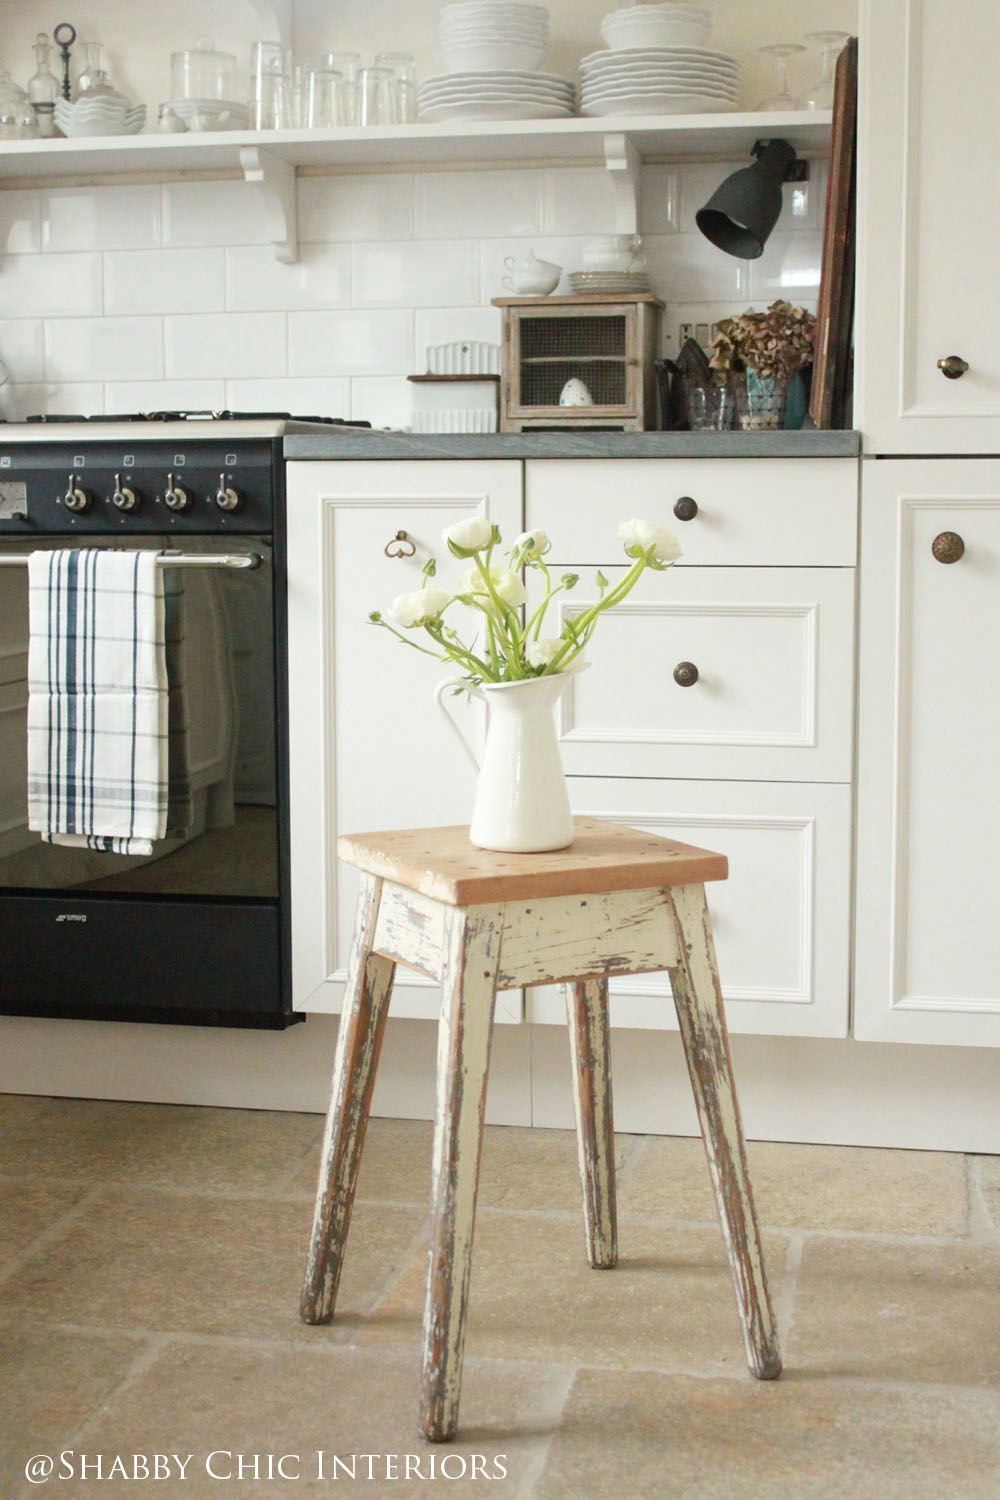 But the attention is diverted to the huge rattan love ornament on the wall. Shabby Chic Interiors Restyling Di Una Cucina Ikea Progetti Di Cucine Interni Shabby Chic Cucina Ikea